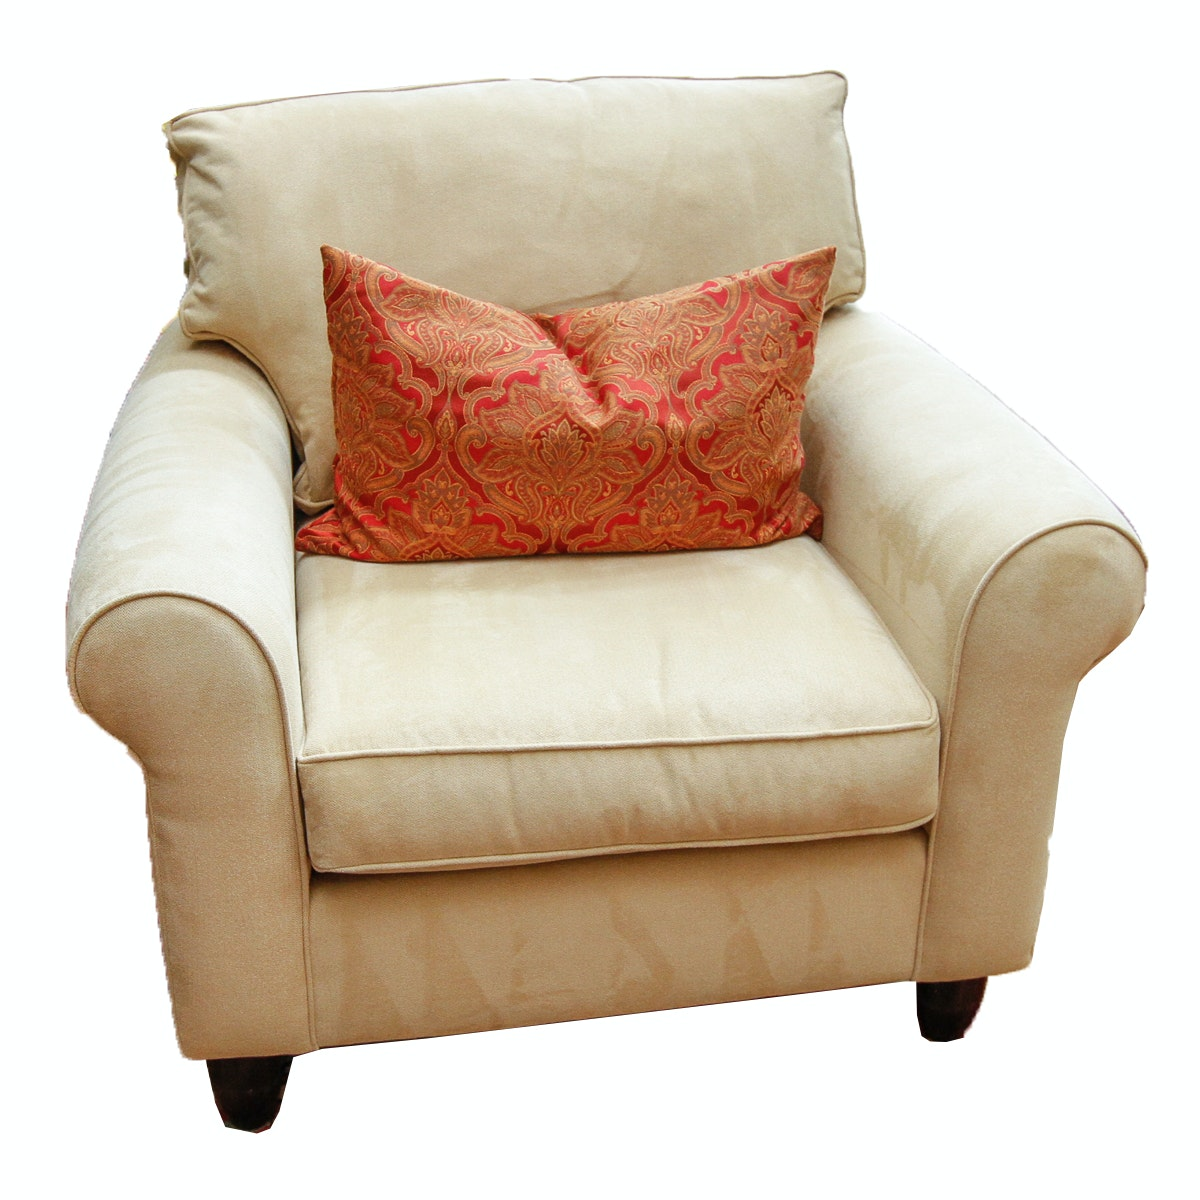 Cream Sofa Chair by Havertys